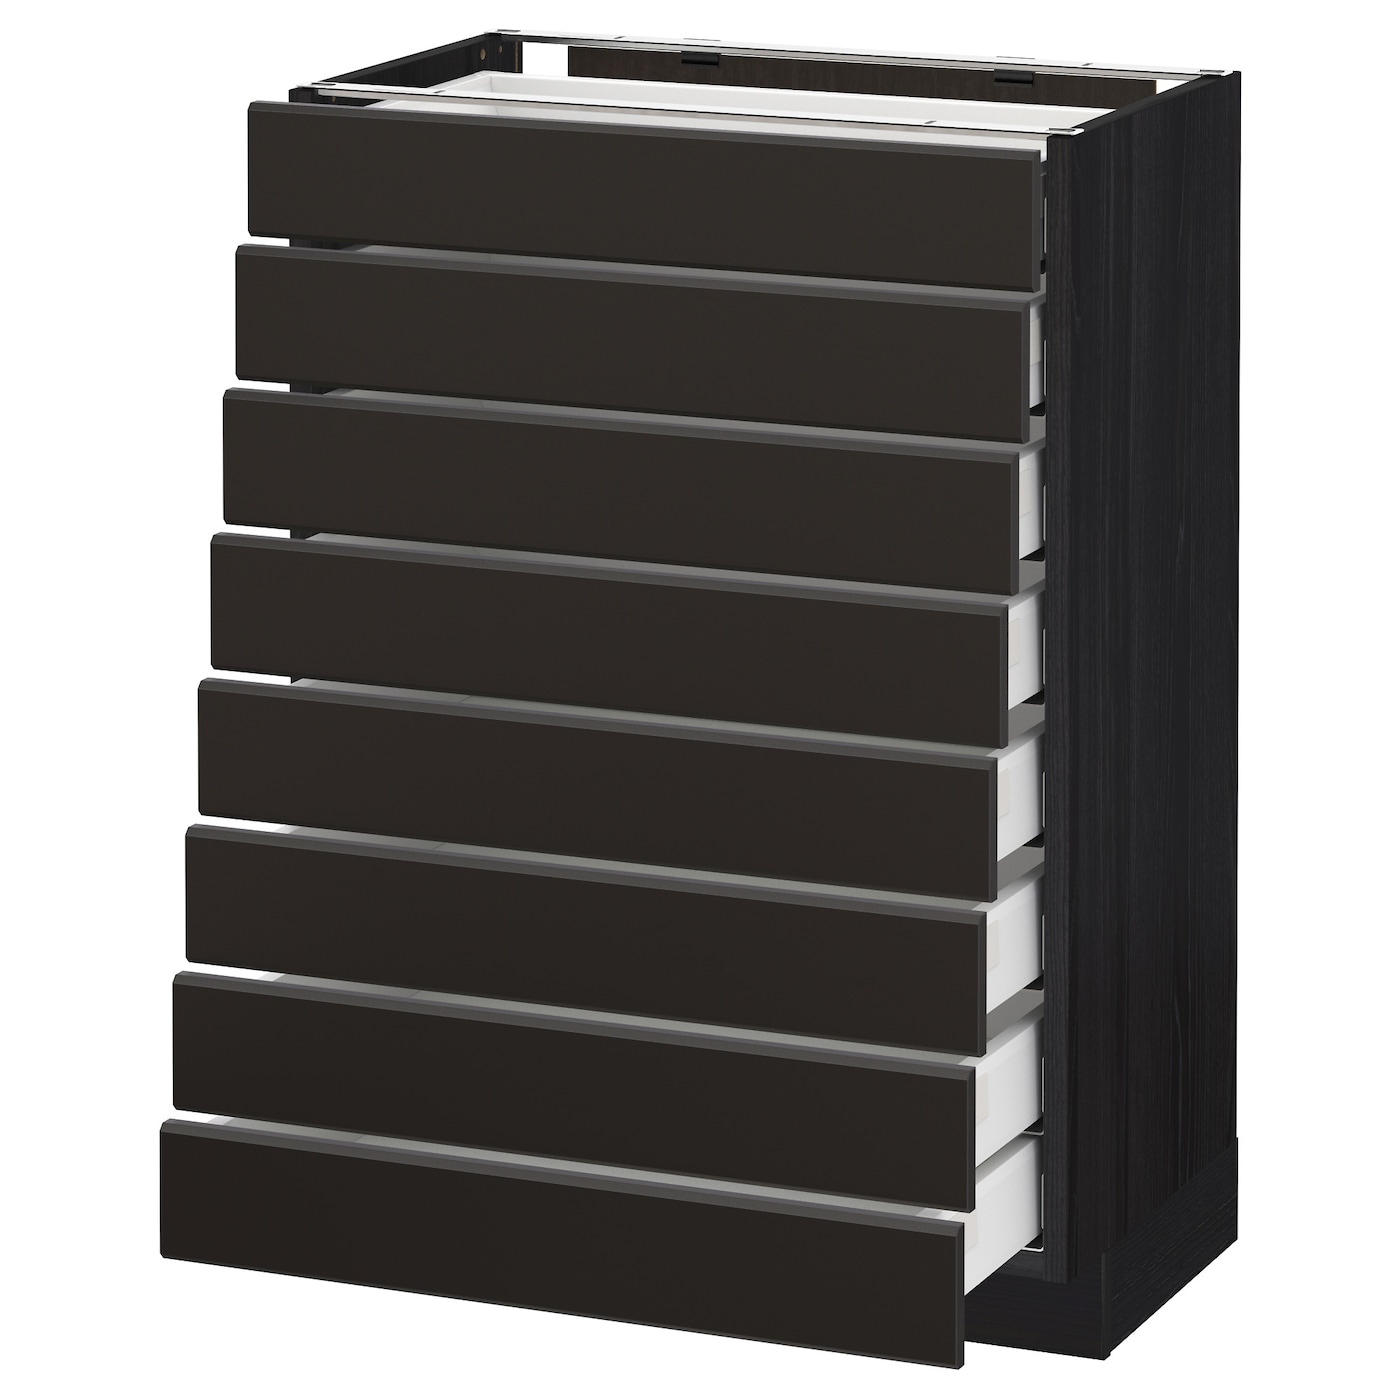 Metod Maximera Base Cabinet 8 Fronts 8 Low Drawers Black Kungsbacka Anthracite 60x37 Cm Ikea